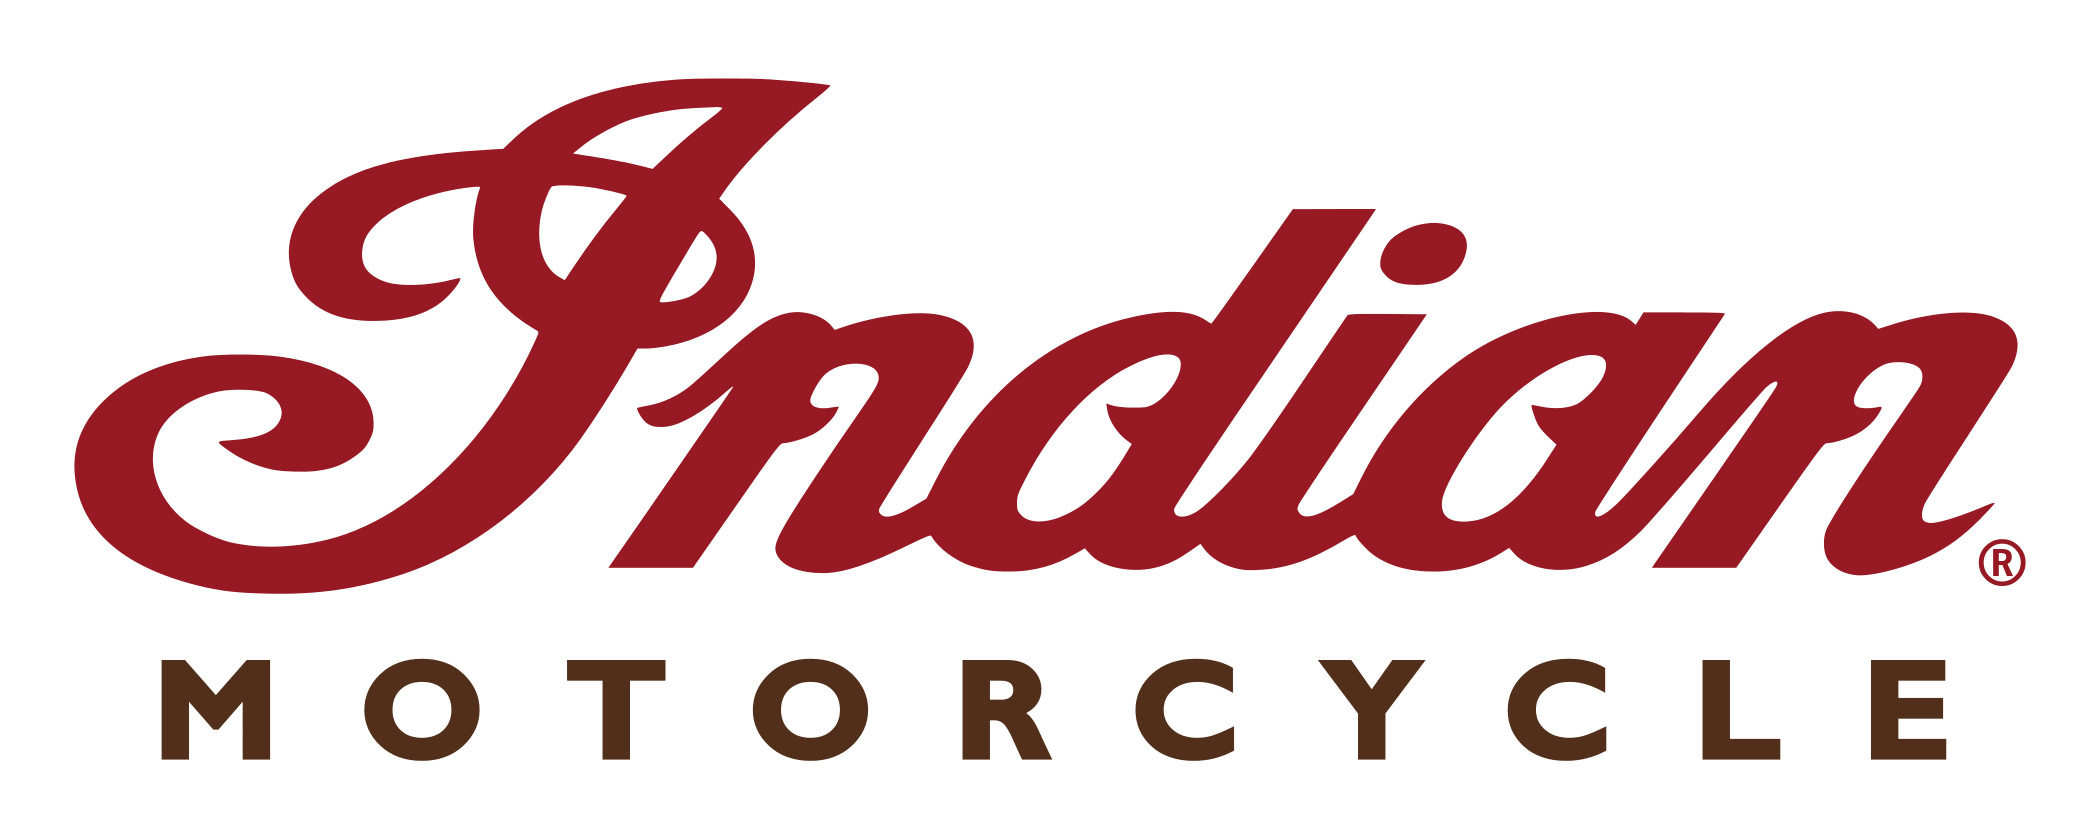 indian logo motorcycle brands